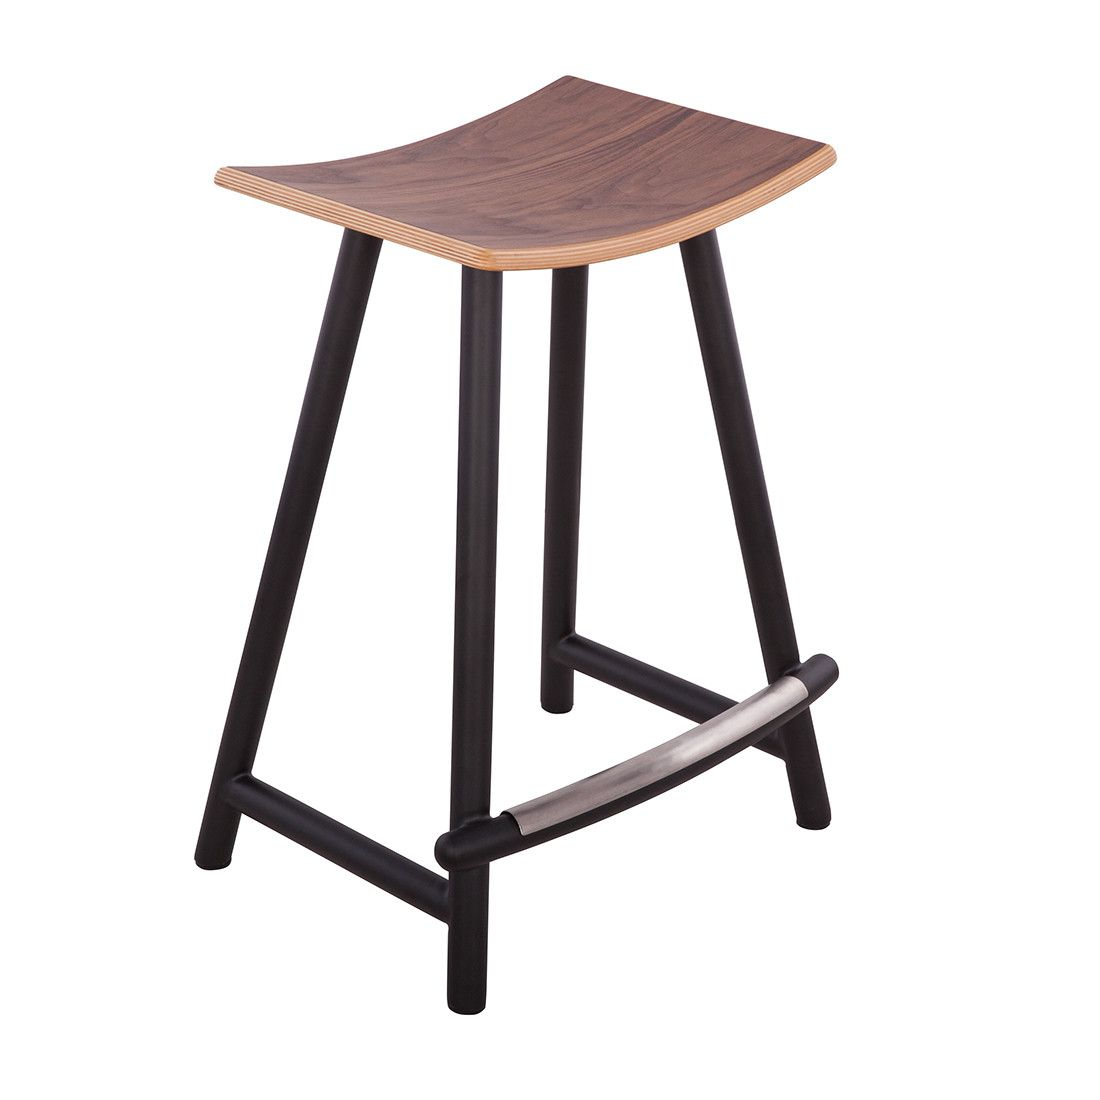 Fabulous Mid Century Panda Counter Stool Usa Where To Buy Sean Unemploymentrelief Wooden Chair Designs For Living Room Unemploymentrelieforg